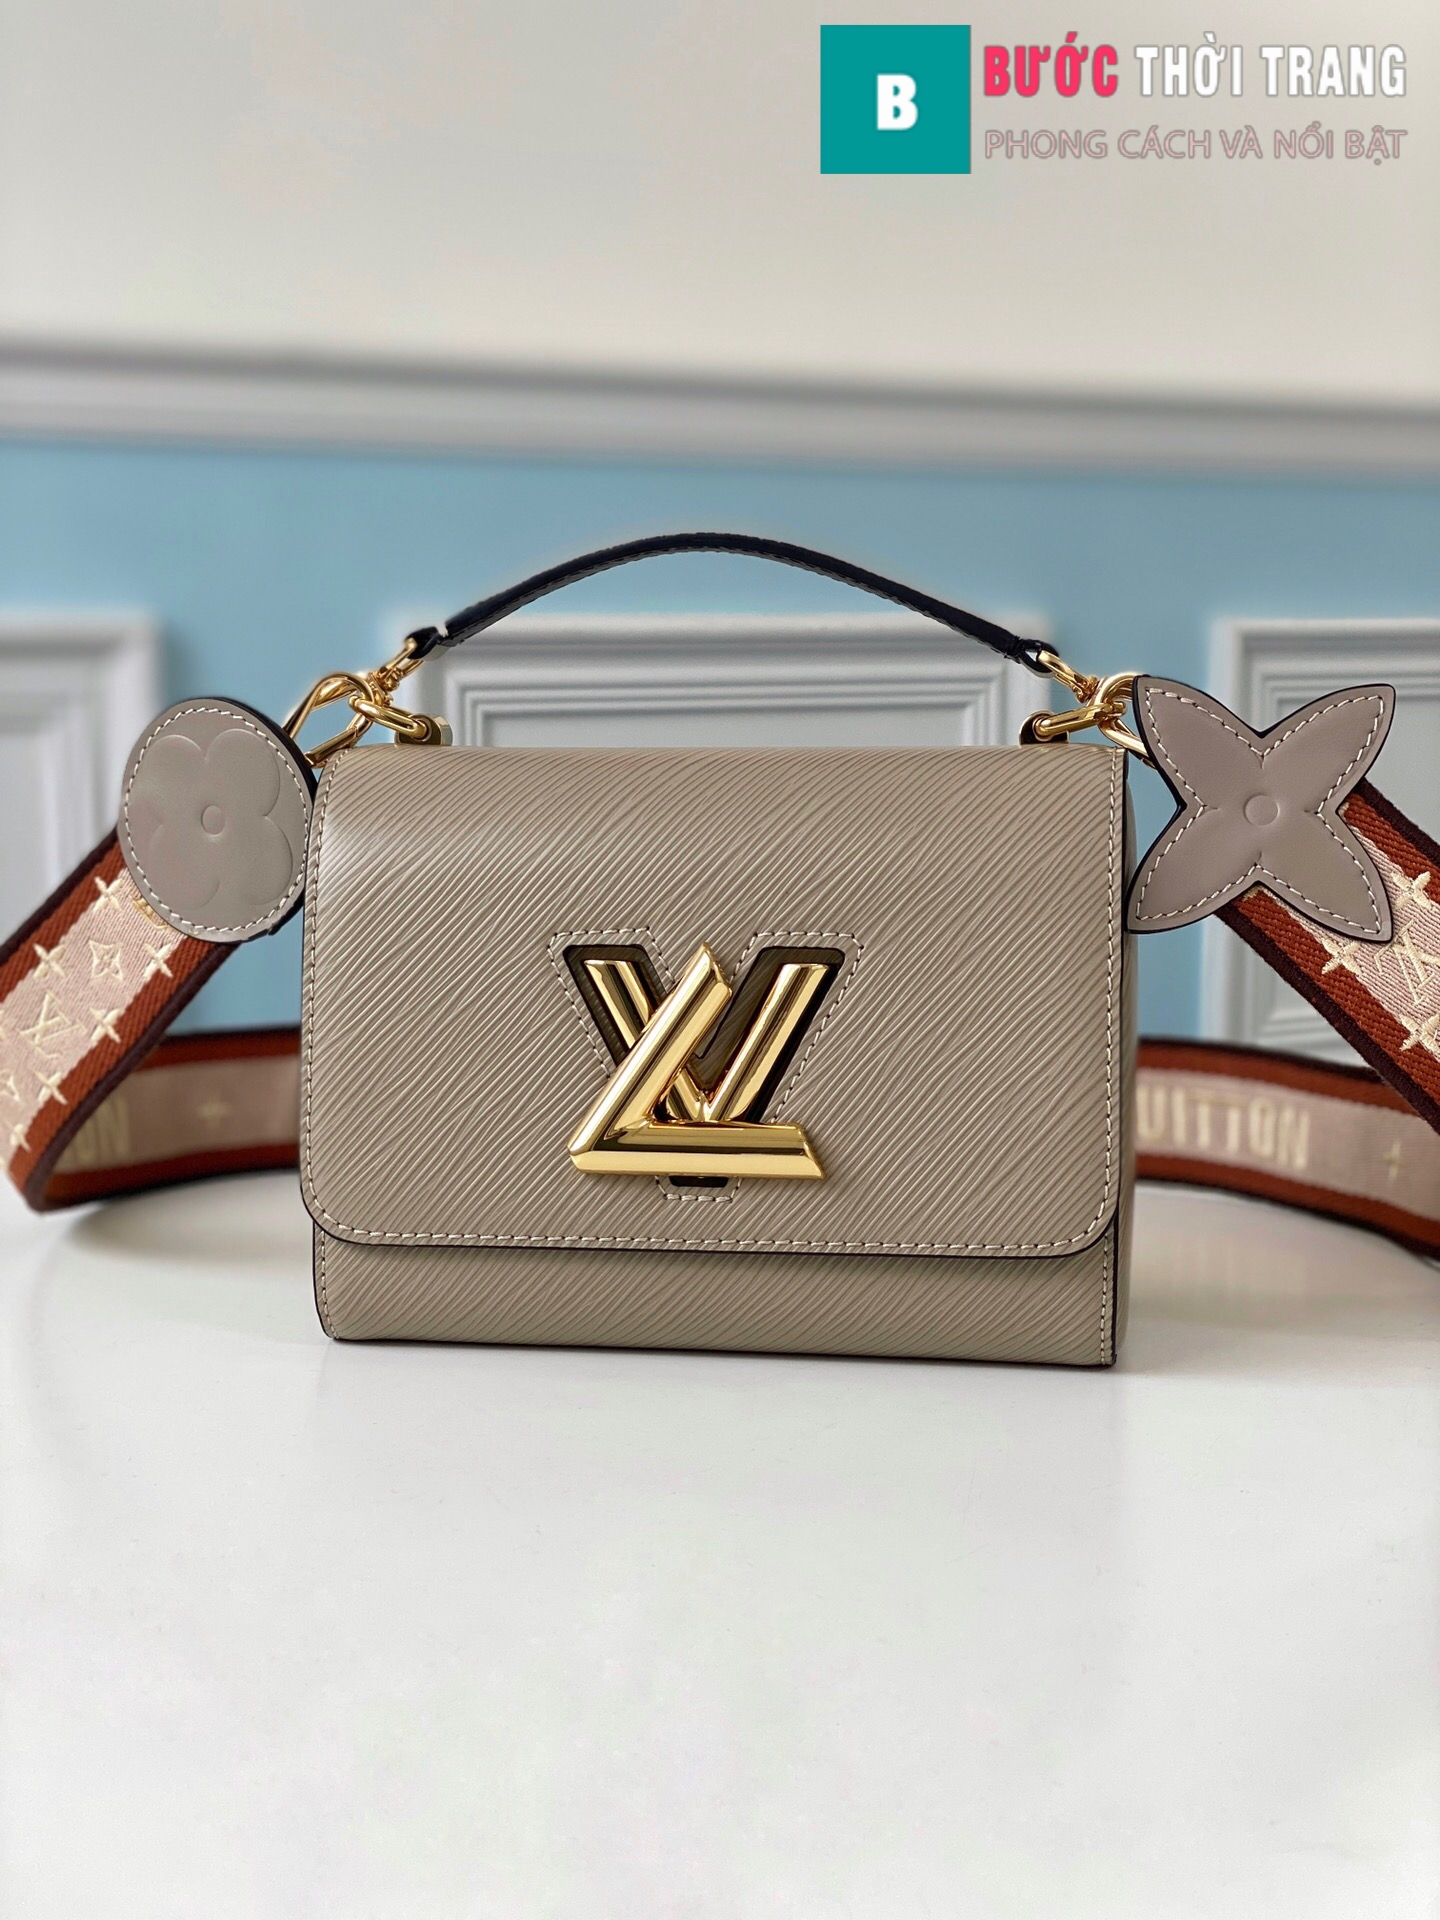 Louis Vuitton Epi leather Twist Mini Handbags (10)